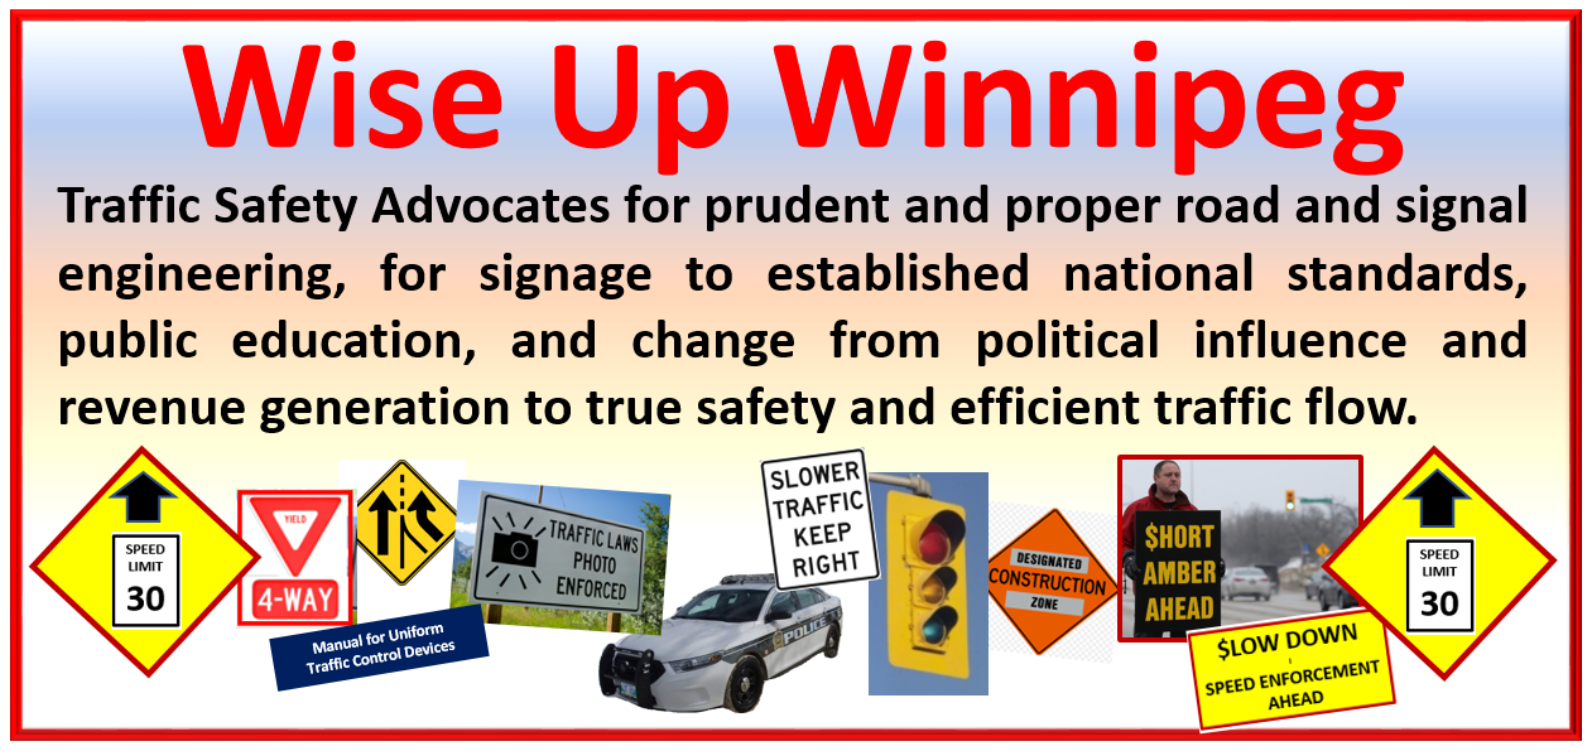 Traffic Safety Advocates fro prudent and proper road and signal engineering, for signage to established national standards MUTCD, public education and a change from political influence and revenue generation to true safety and efficient traffic flow.